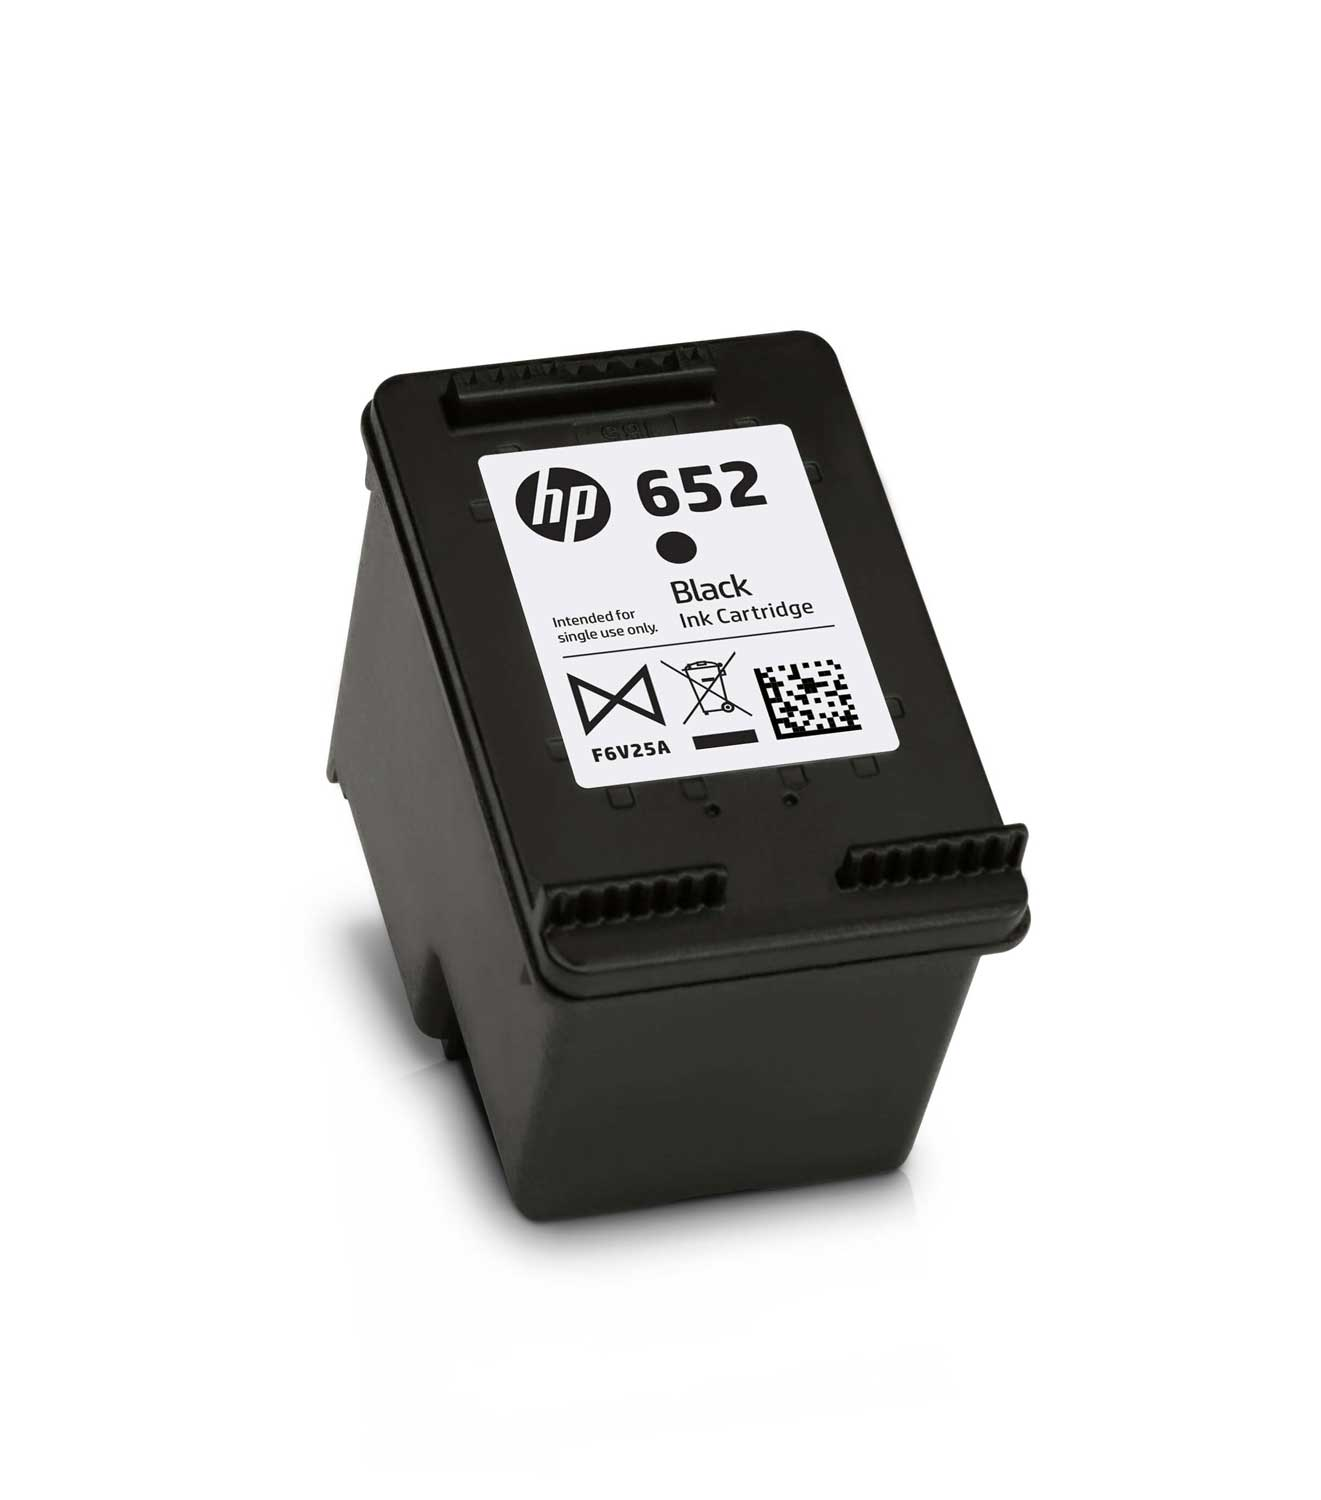 Μελάνι-HP-652-Black-Ink-Cartridge